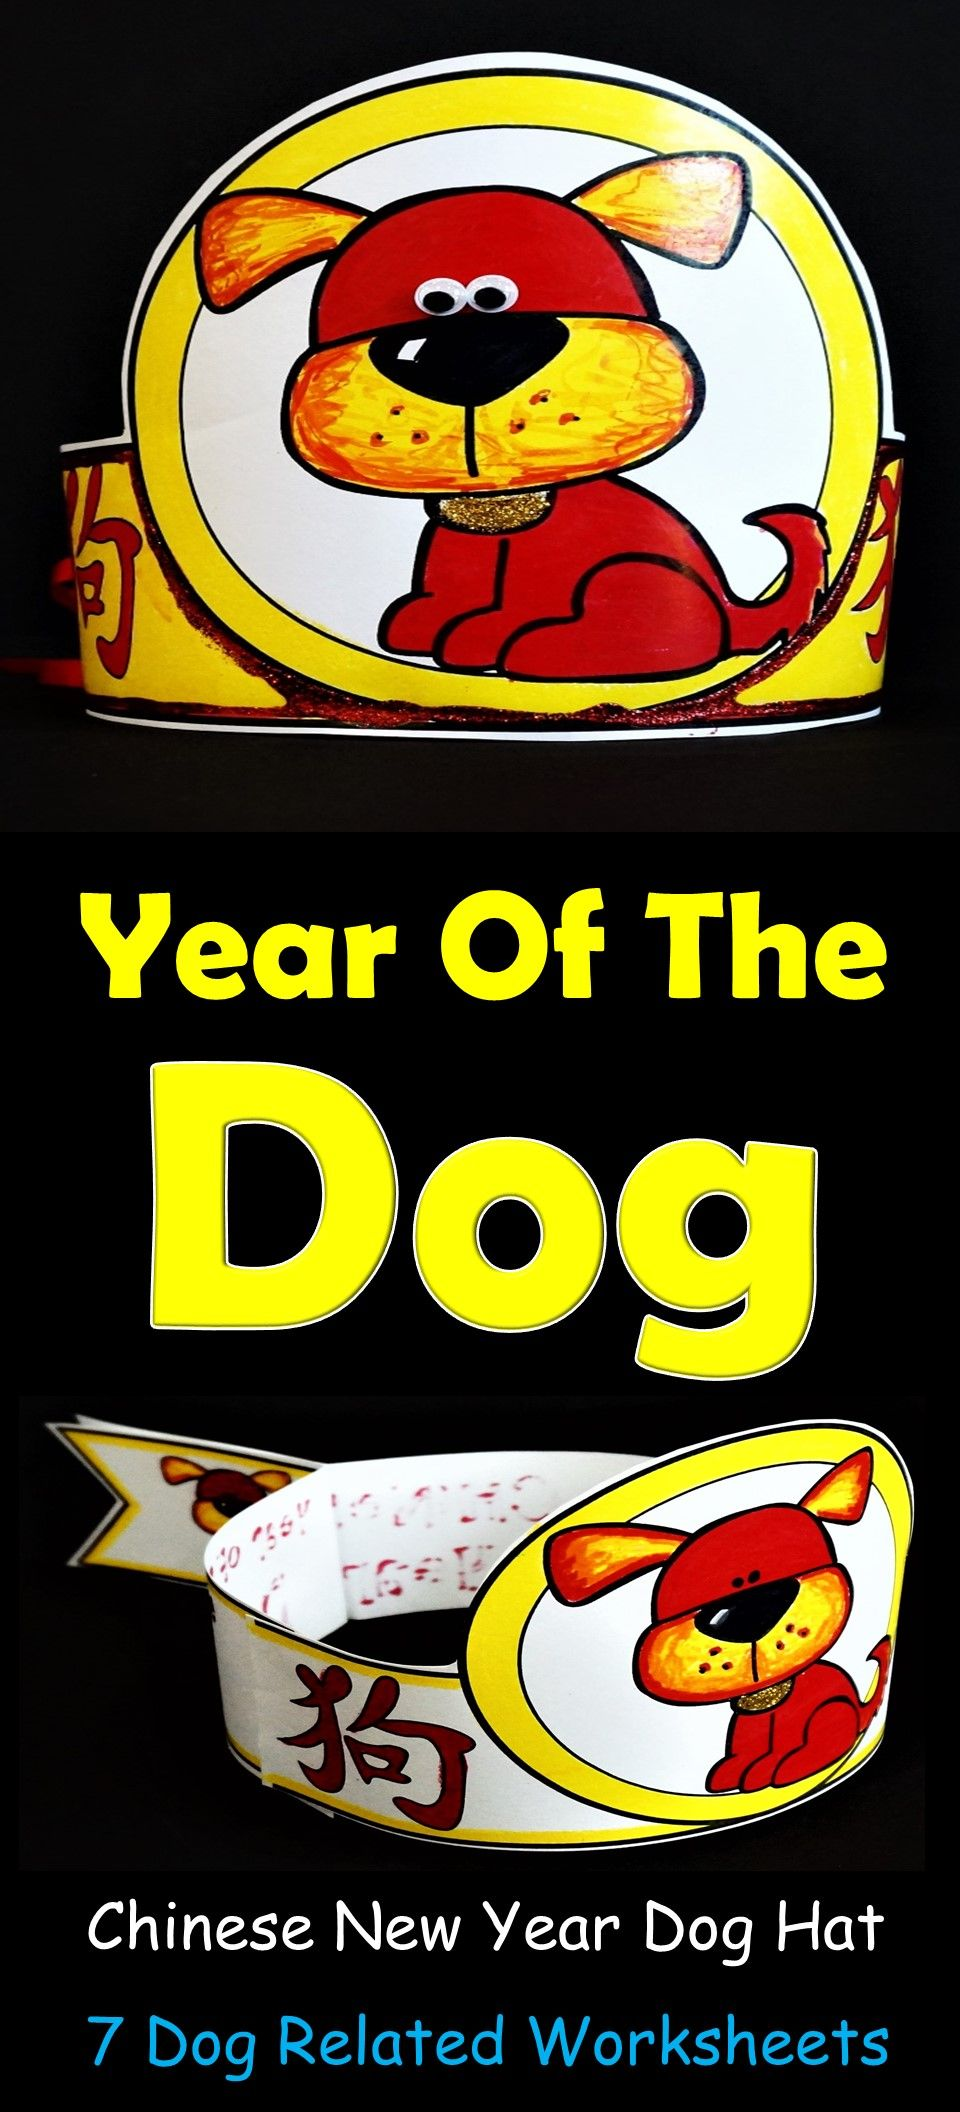 Year of the Dog Crown Chinese New Year 2018 February